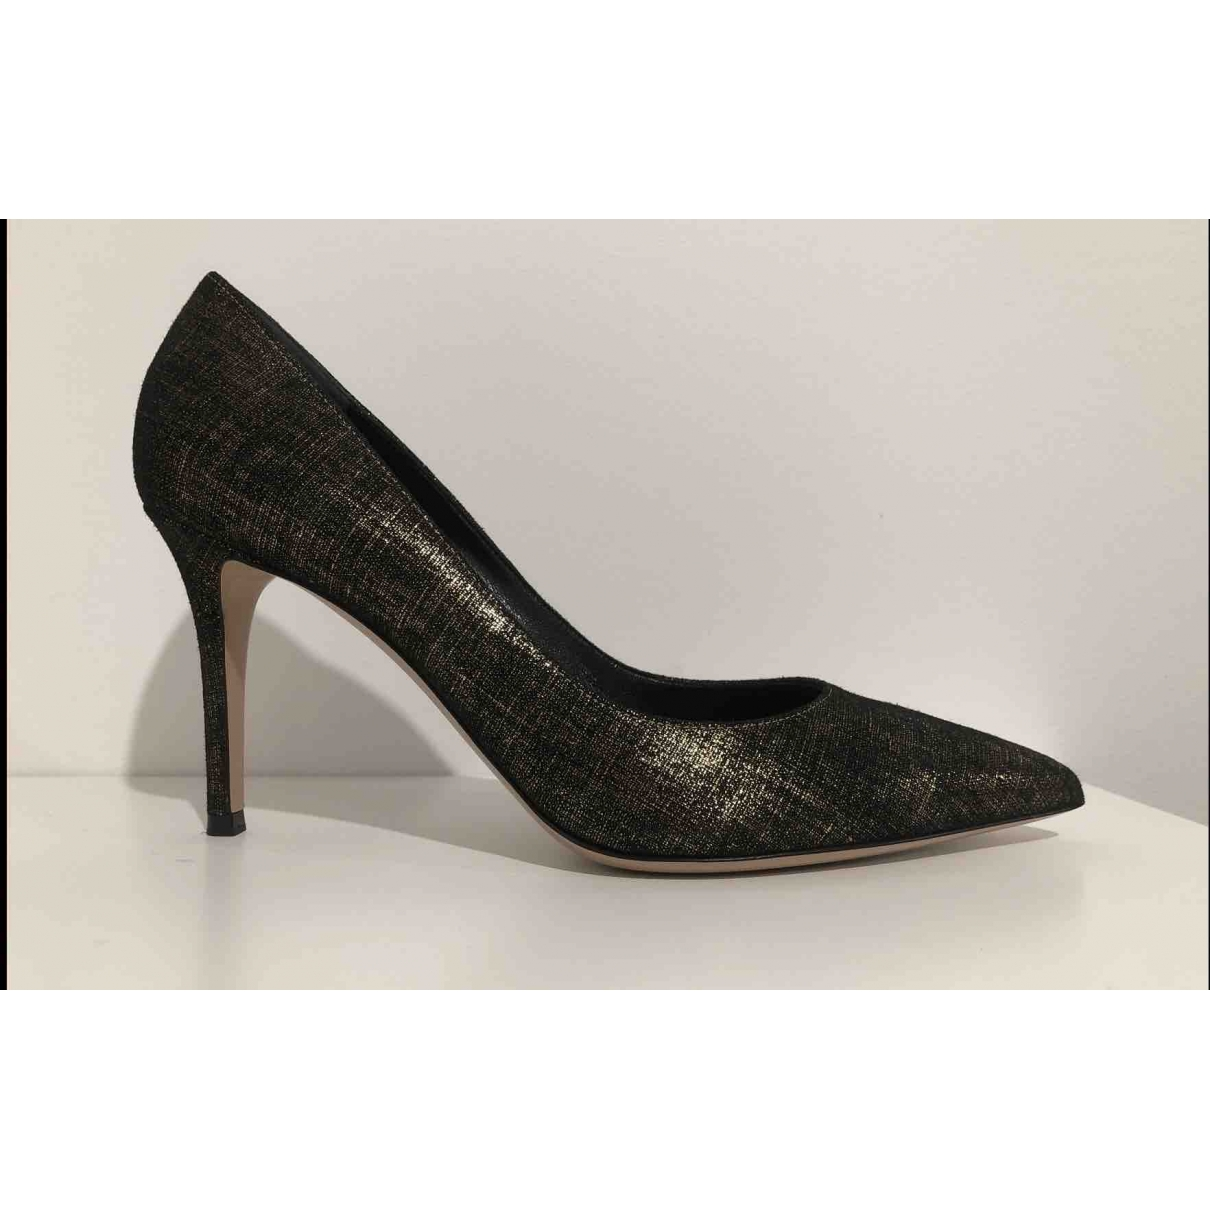 Gianvito Rossi Gianvito Black Suede Heels for Women 40 EU